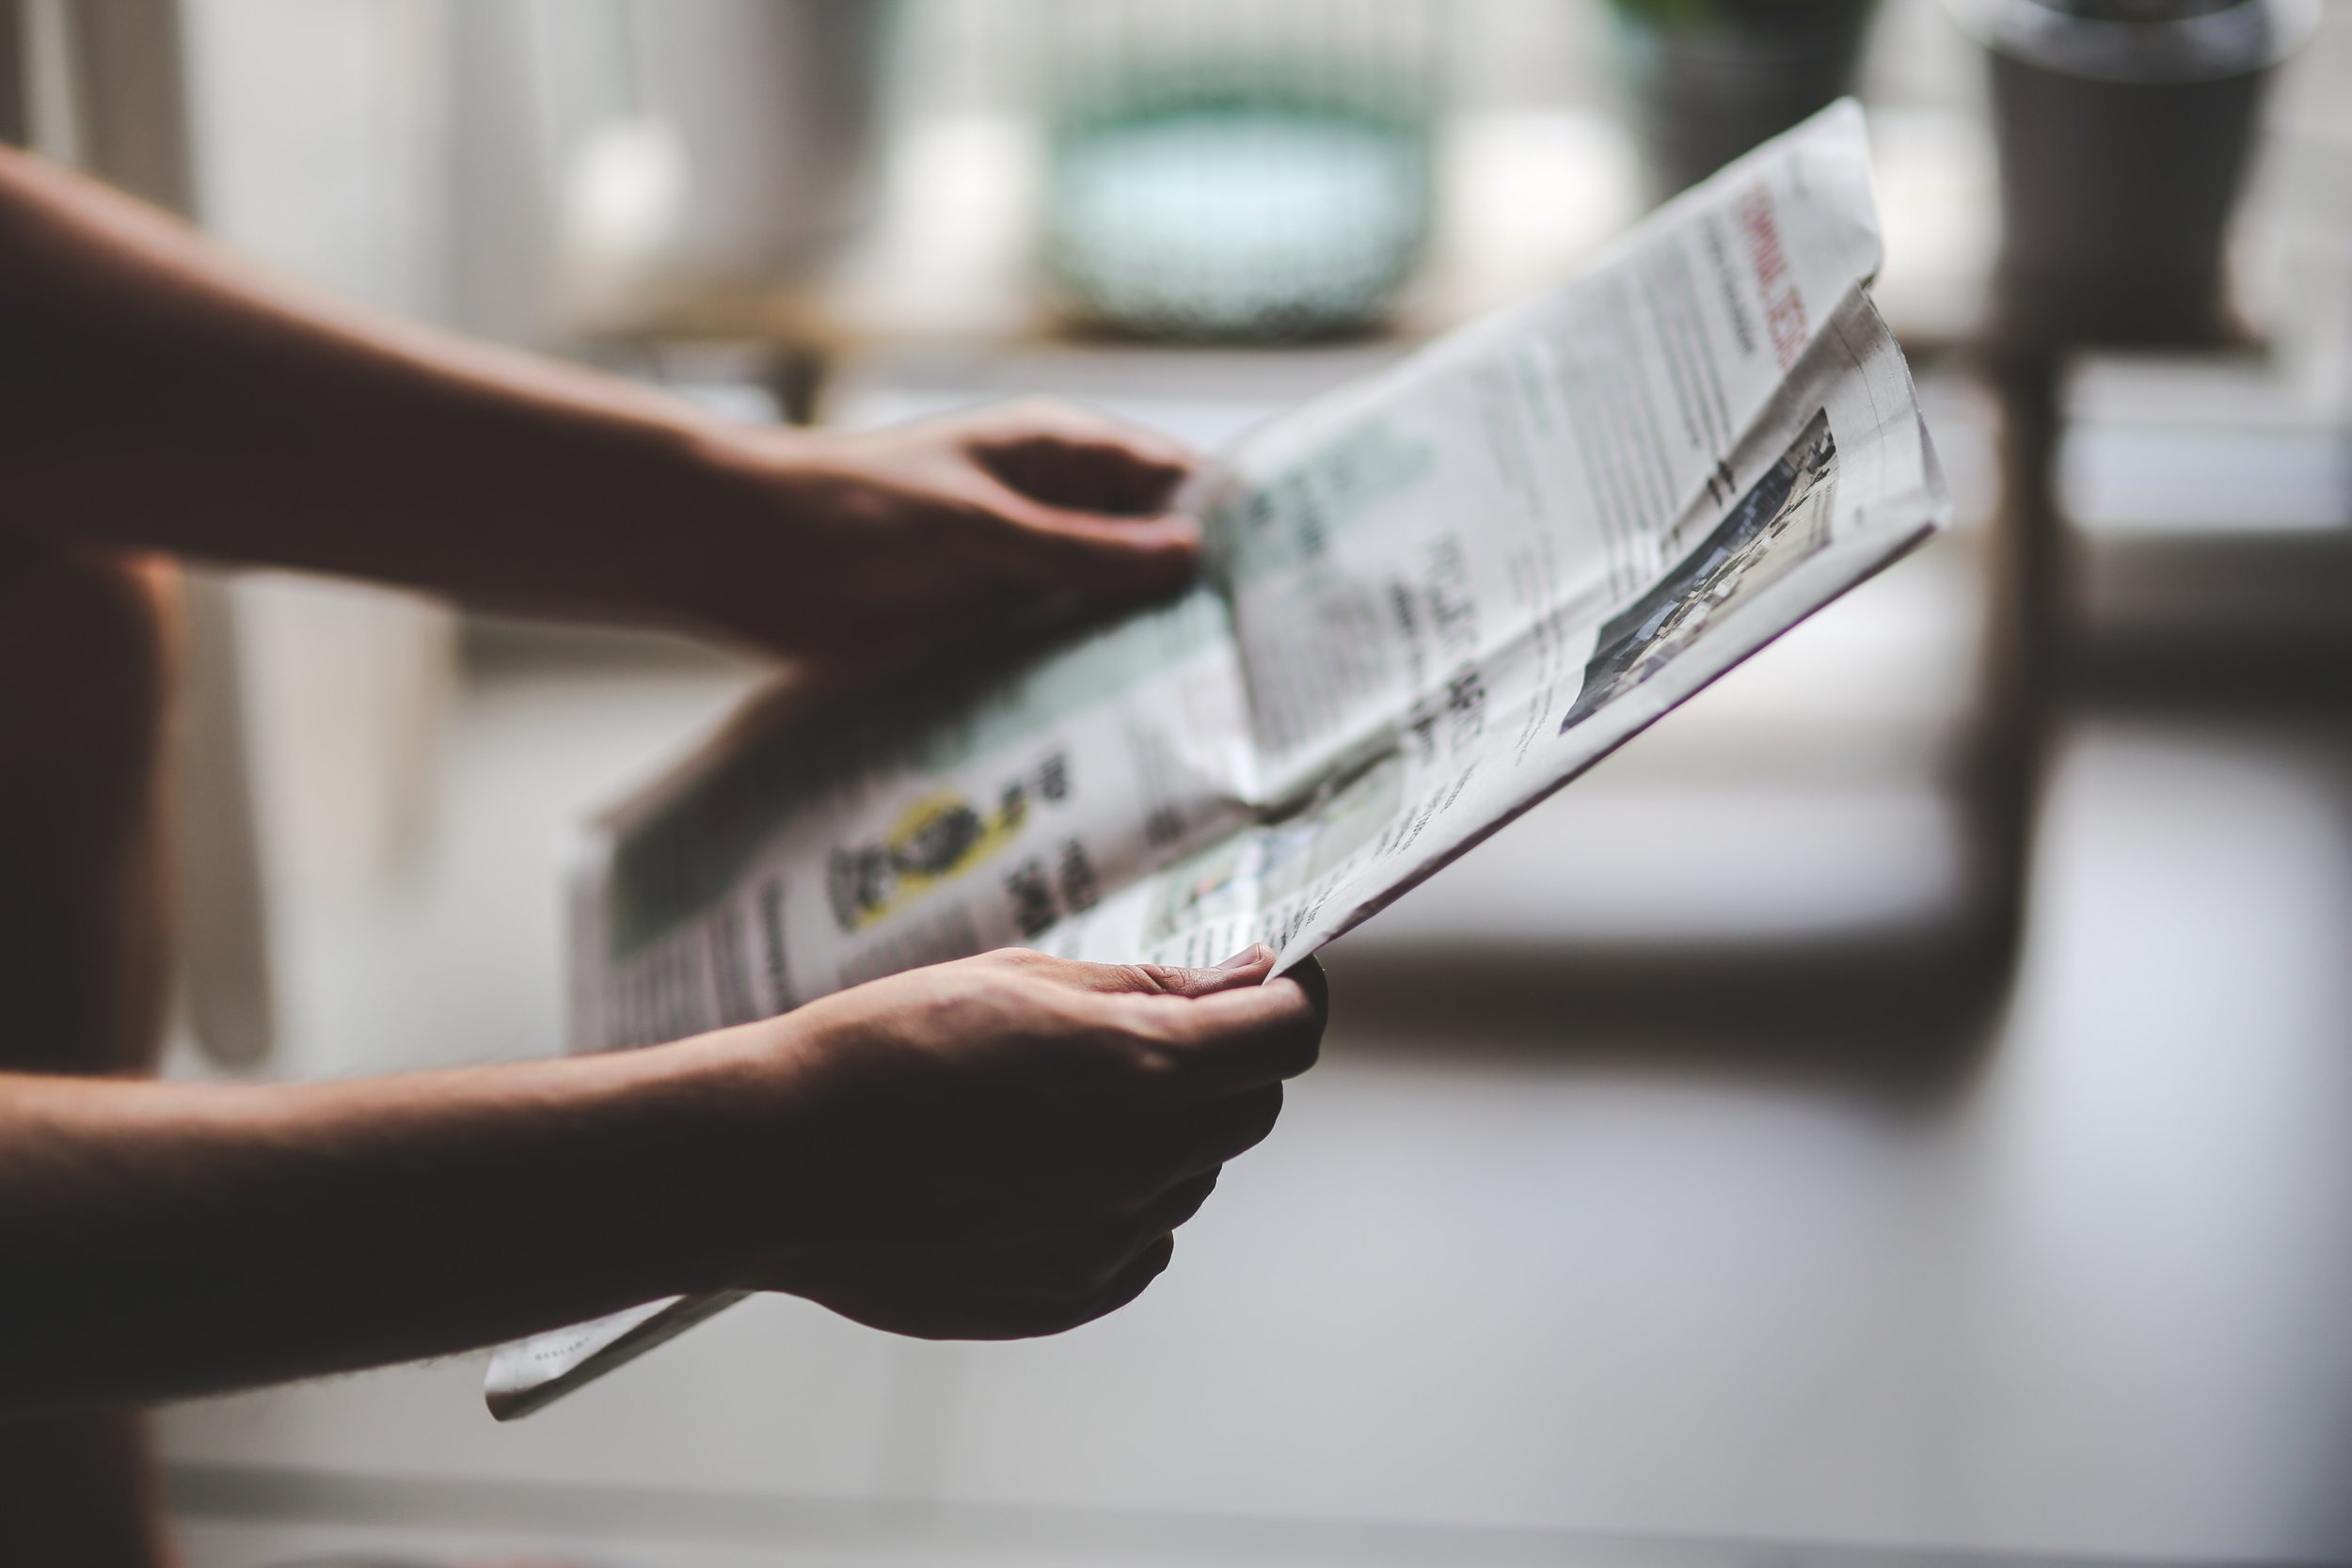 Public Relations - Let us get the word out about your event. We have great relationships established with the local press and enjoy spreading the word. Not sure how press can help? Let us help develop a strategy unique to your event.